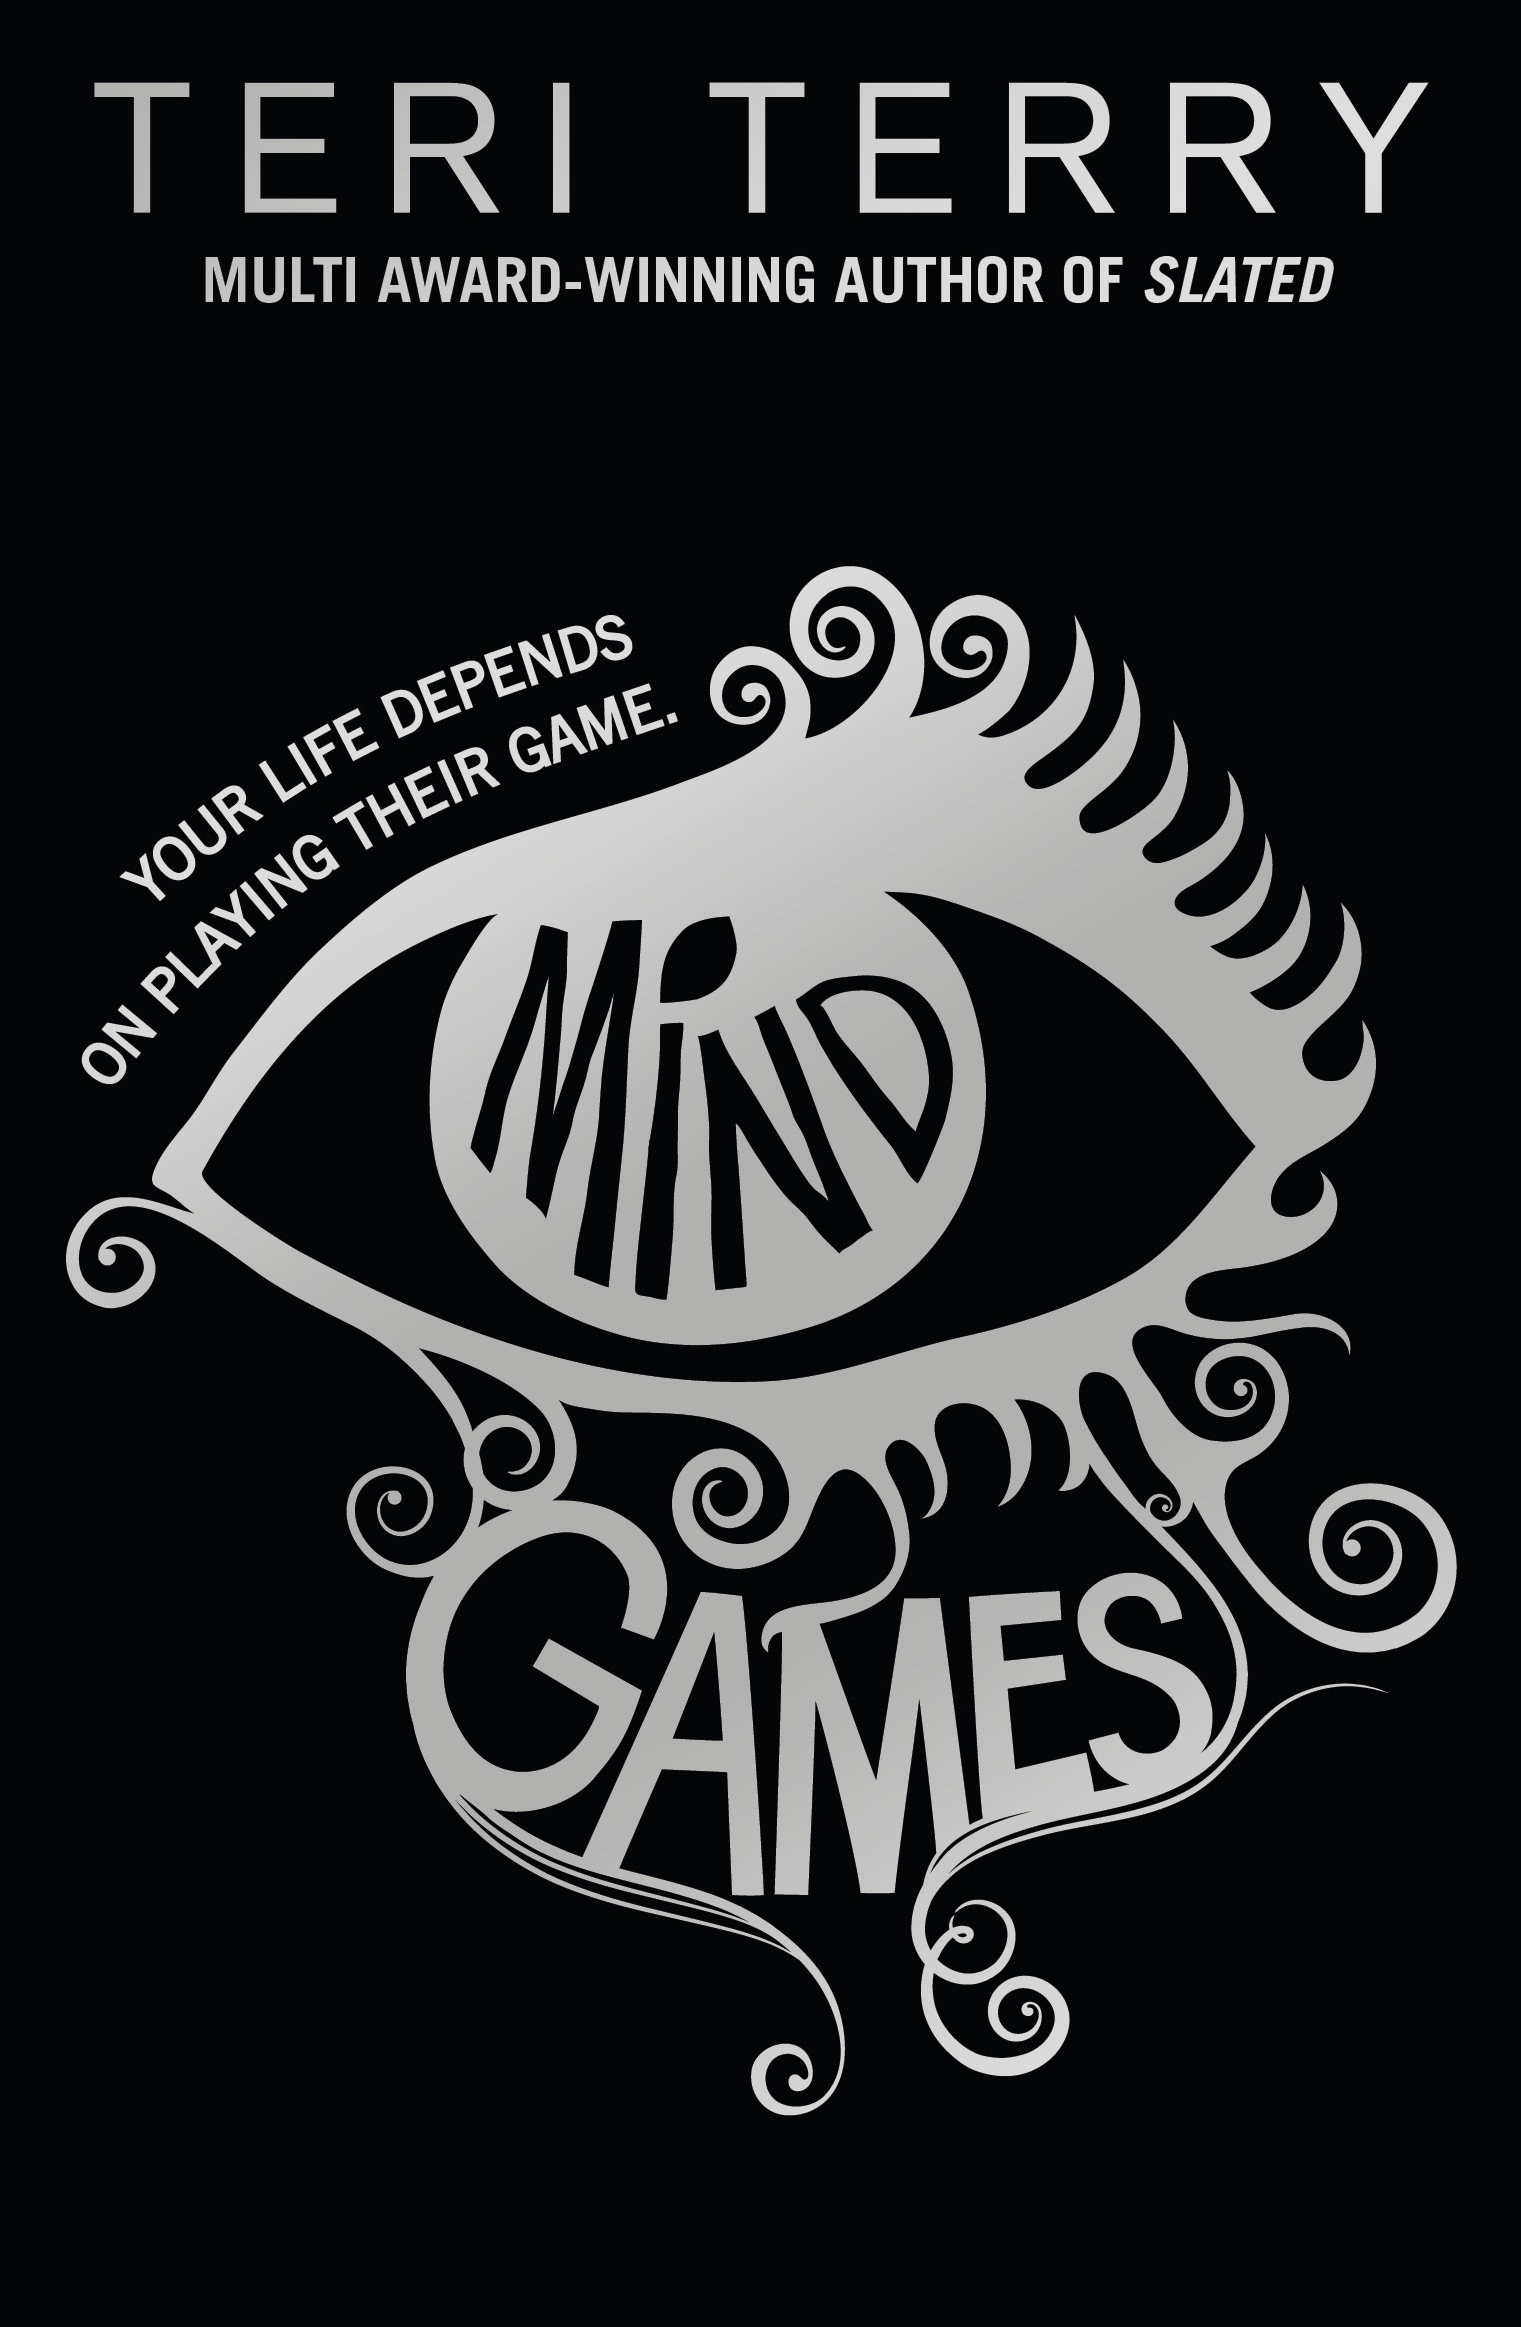 Book Review: Mind Games by Teri Terry